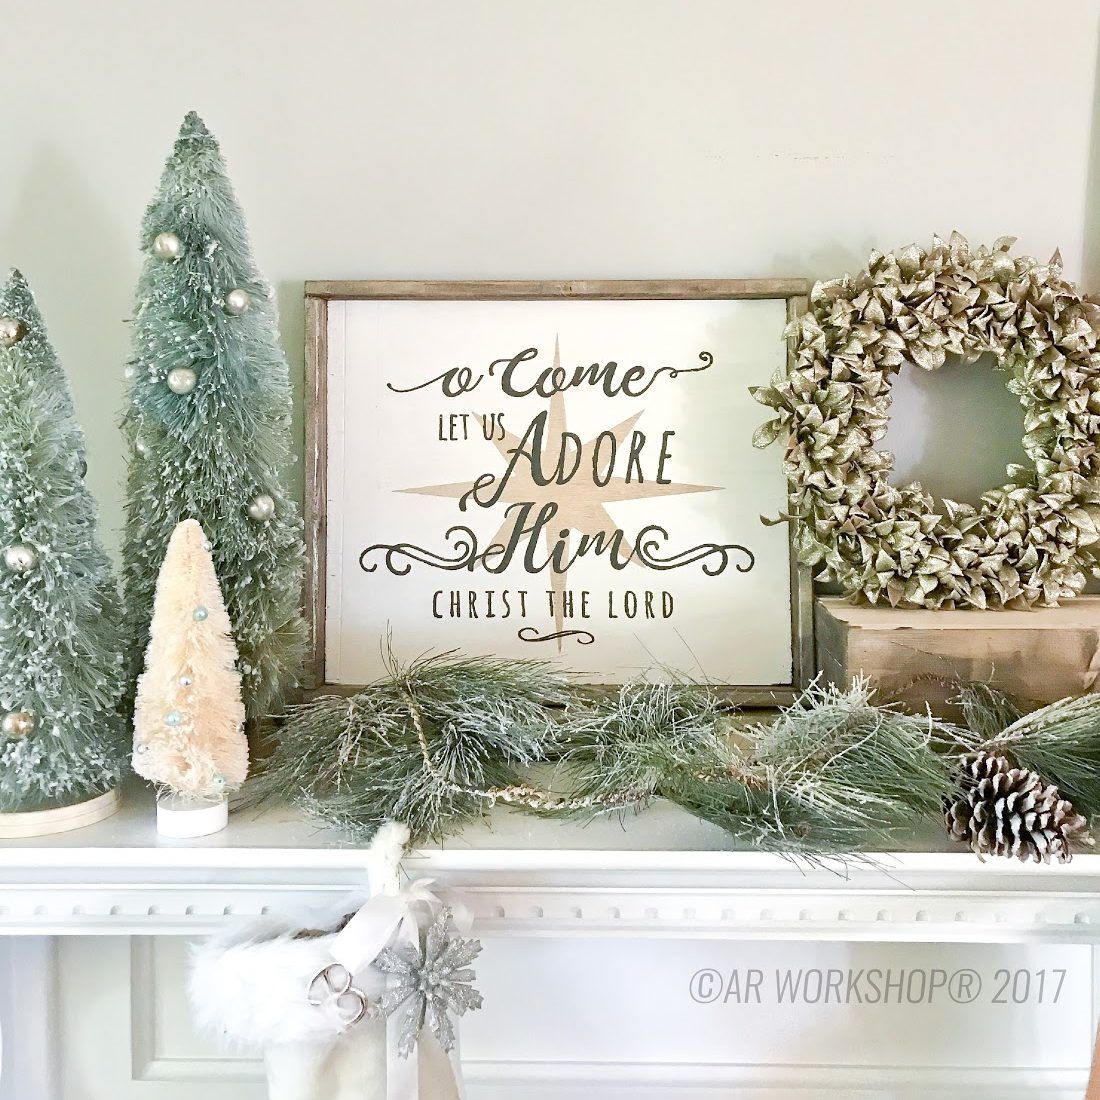 Get ready for the holidays framed wood sign or centerpiece box o come let us adore him framed wood sign 1821 solutioingenieria Images